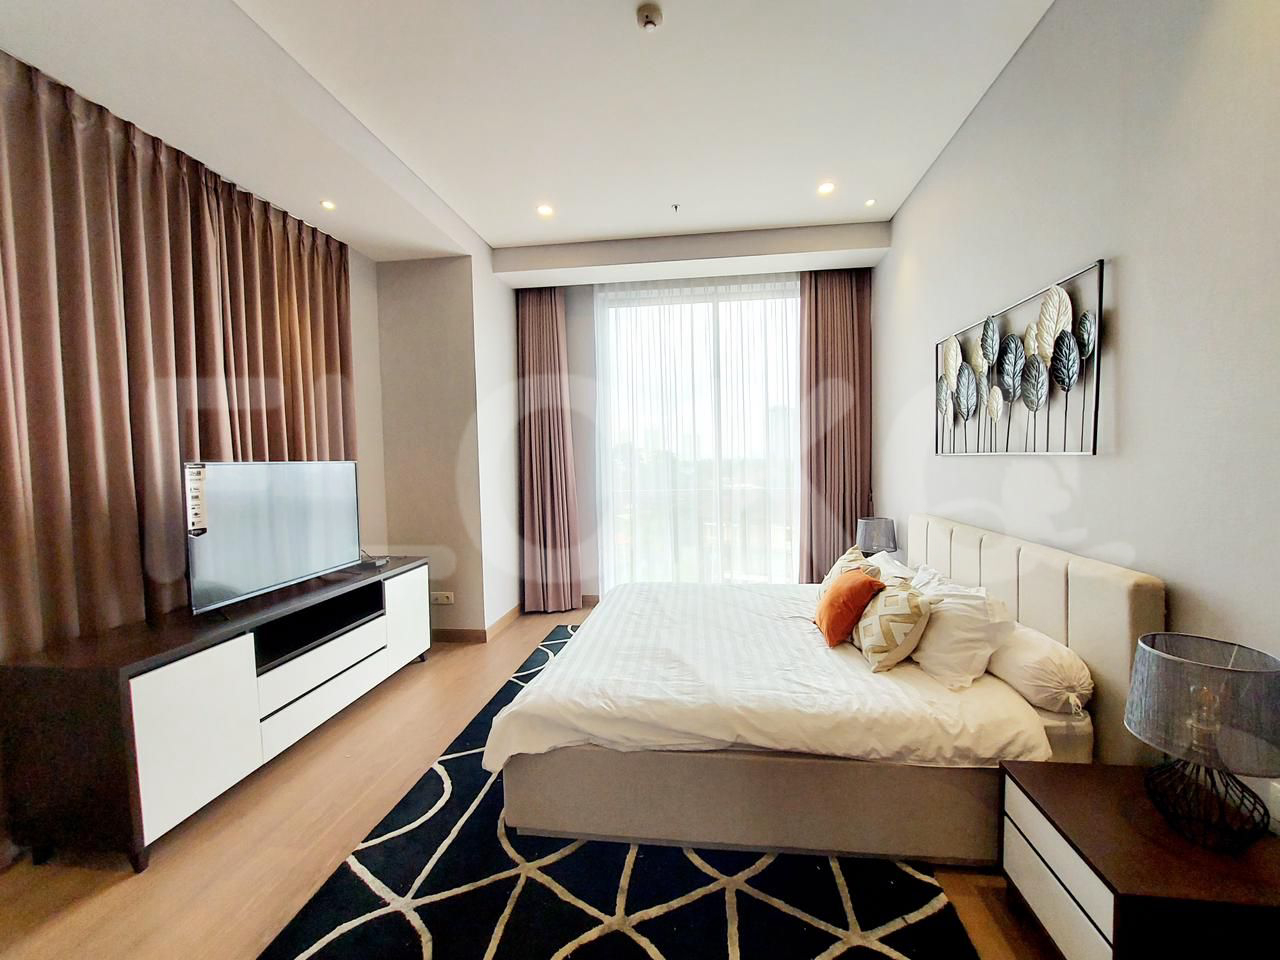 Rent 2 BR on 16th Floor, Pay Yearly, The Pakubuwono Spring